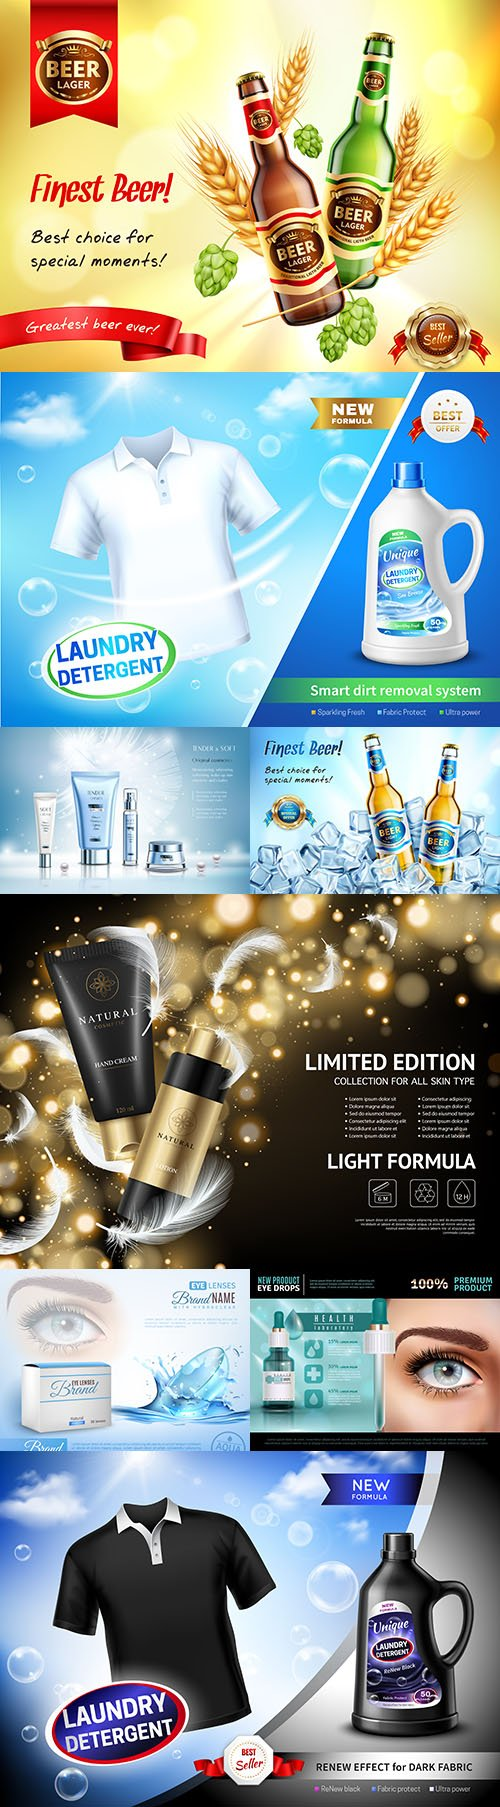 Brand cosmetics and household chemistry 3d illustration